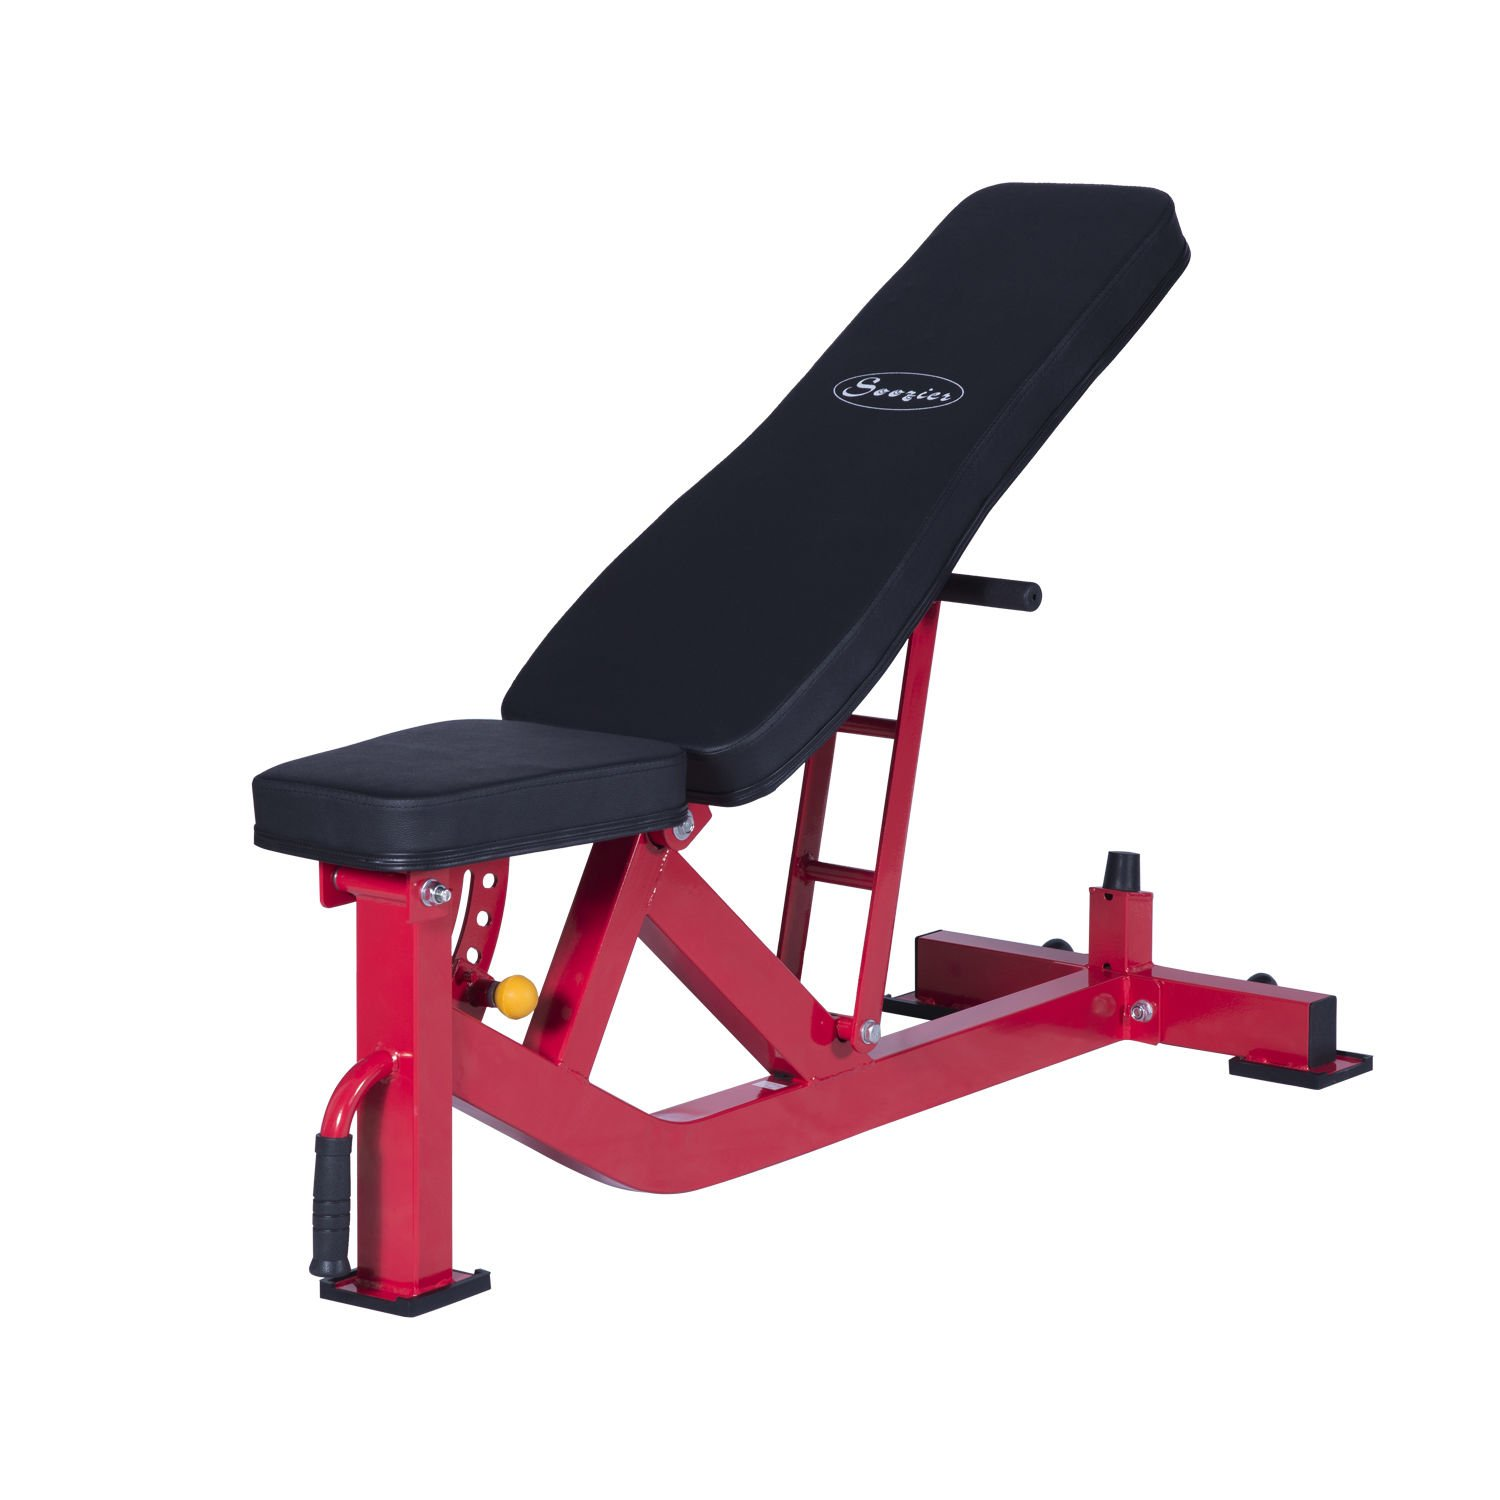 GHP Black/Red Adjustable Ten-Position 53.15''L × 22.05''W × 18.70''H Weight Bench